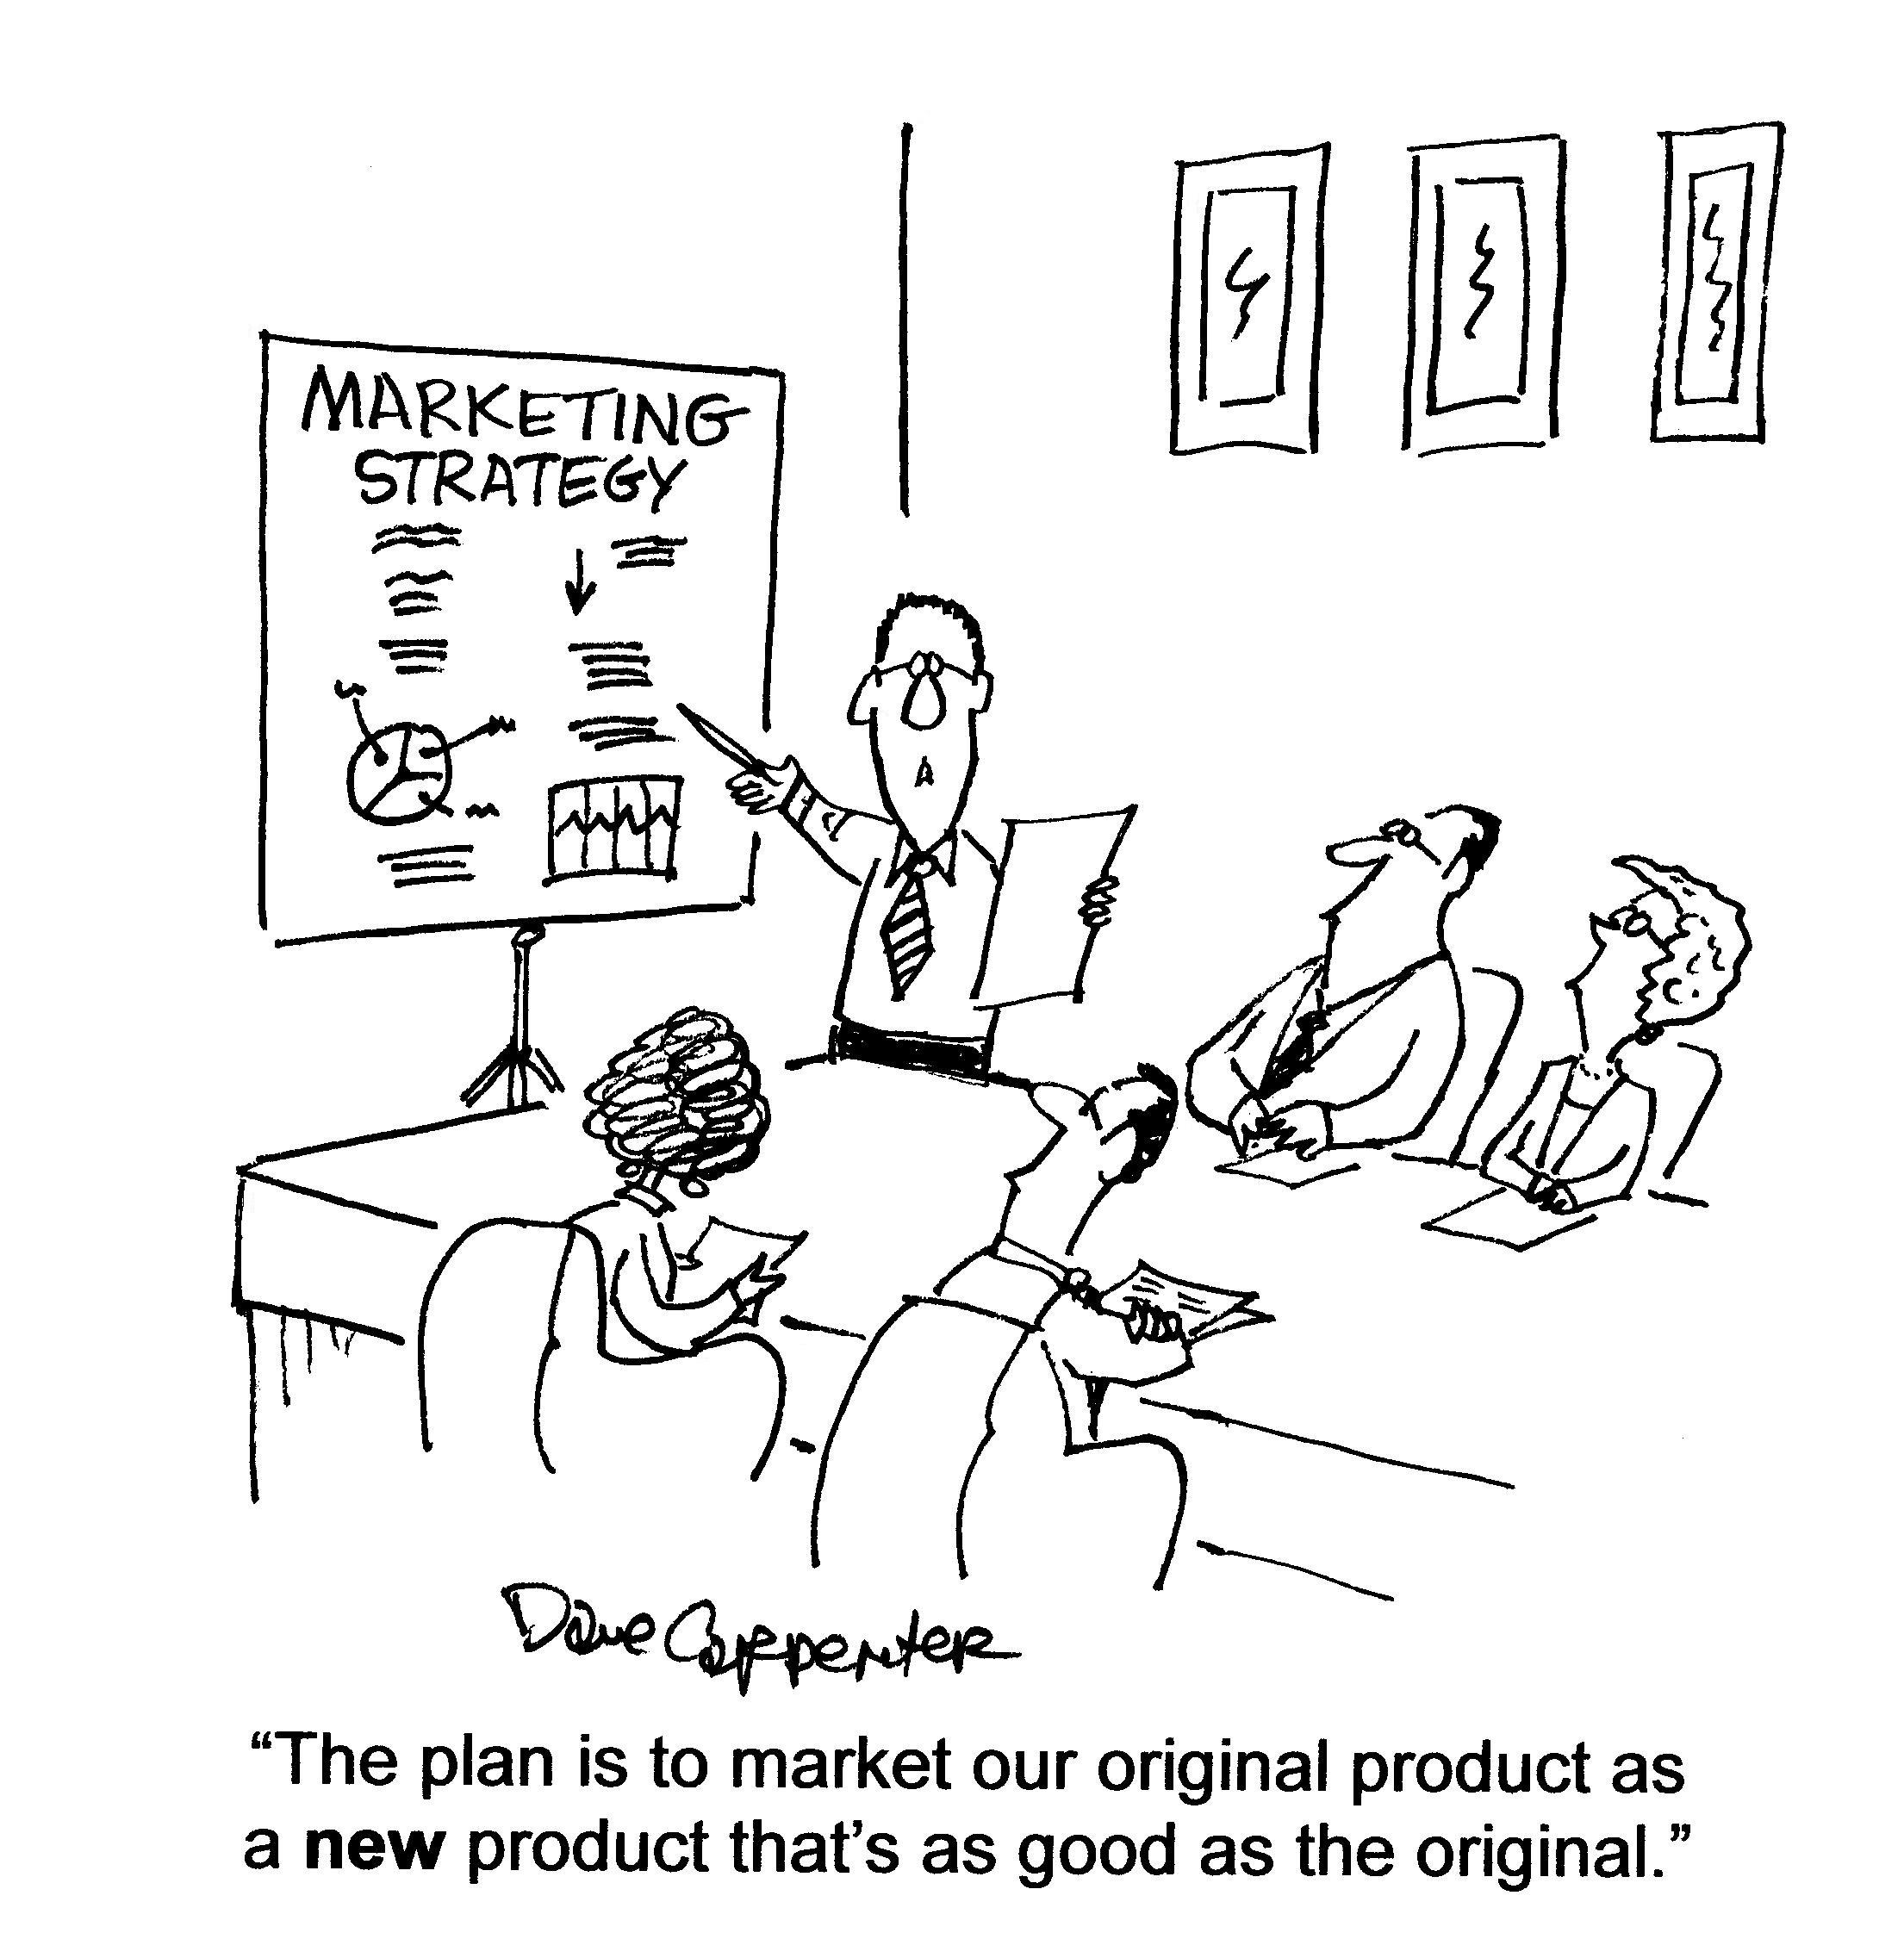 advertising creative technology marketing impact for manufacturers Att Phone Plans Home marketing plan cartoon att phone plans pricing